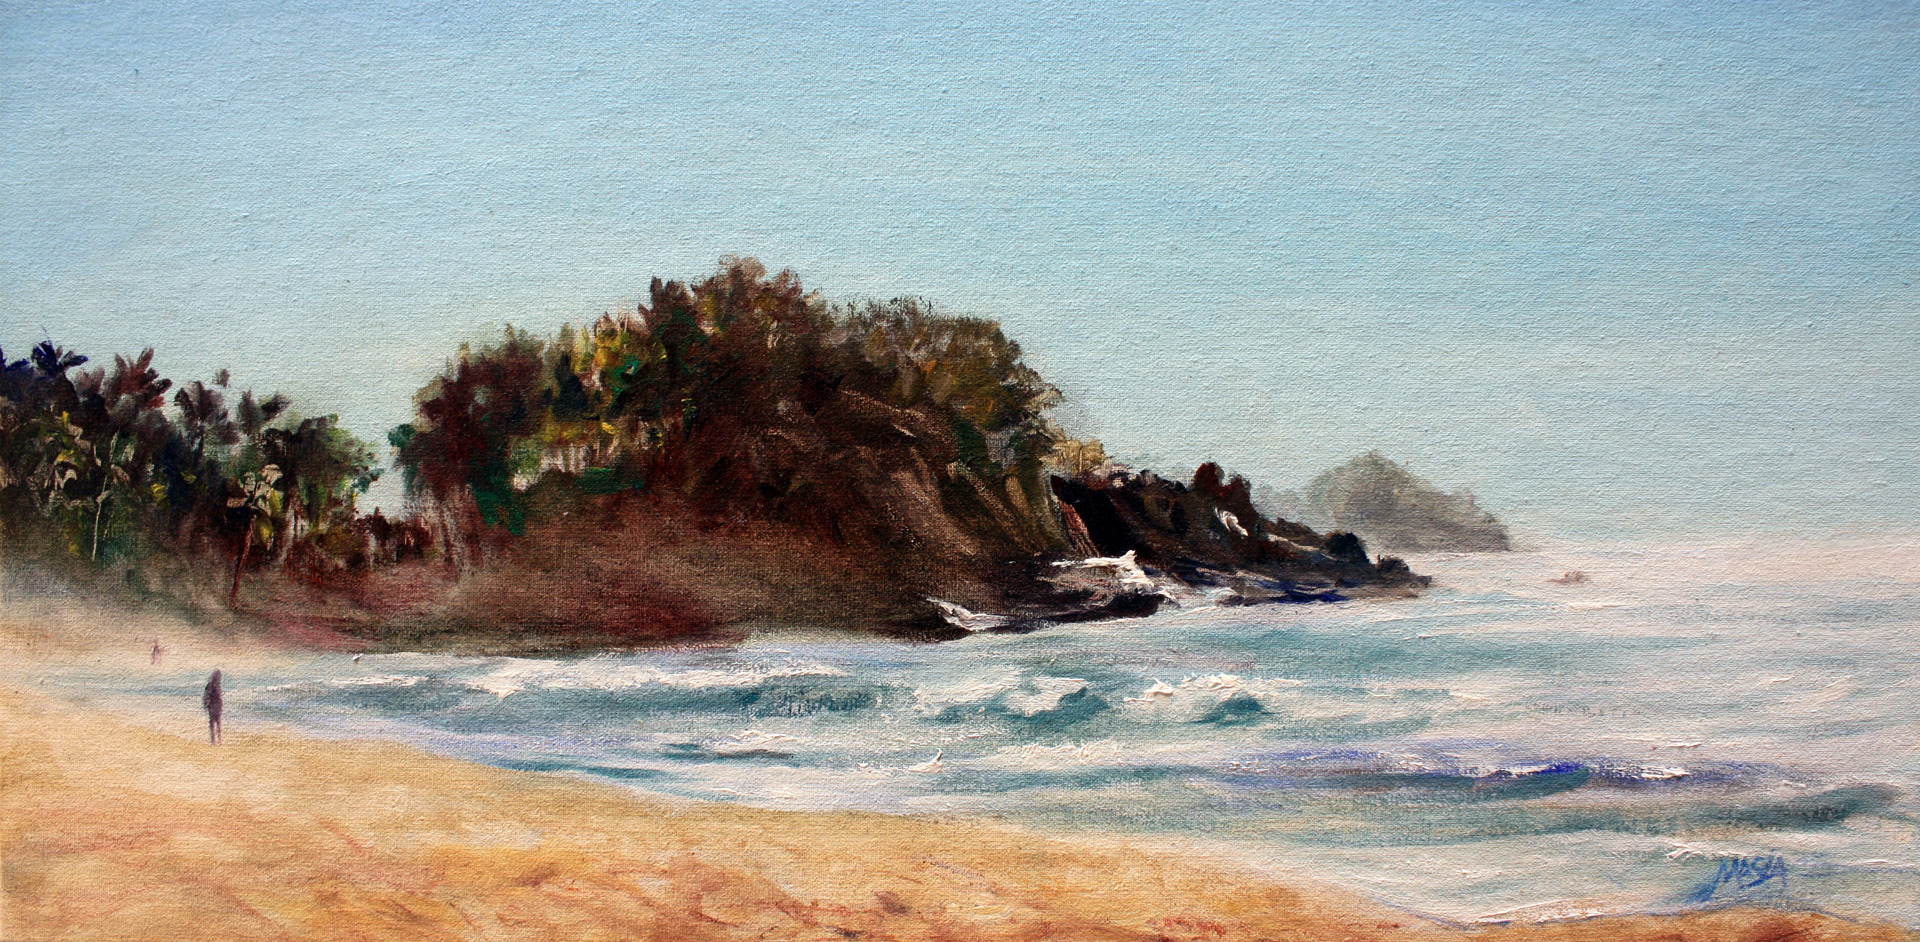 Blinded By the Light,(Plein Air in San Pancho)1920p72dpi copy